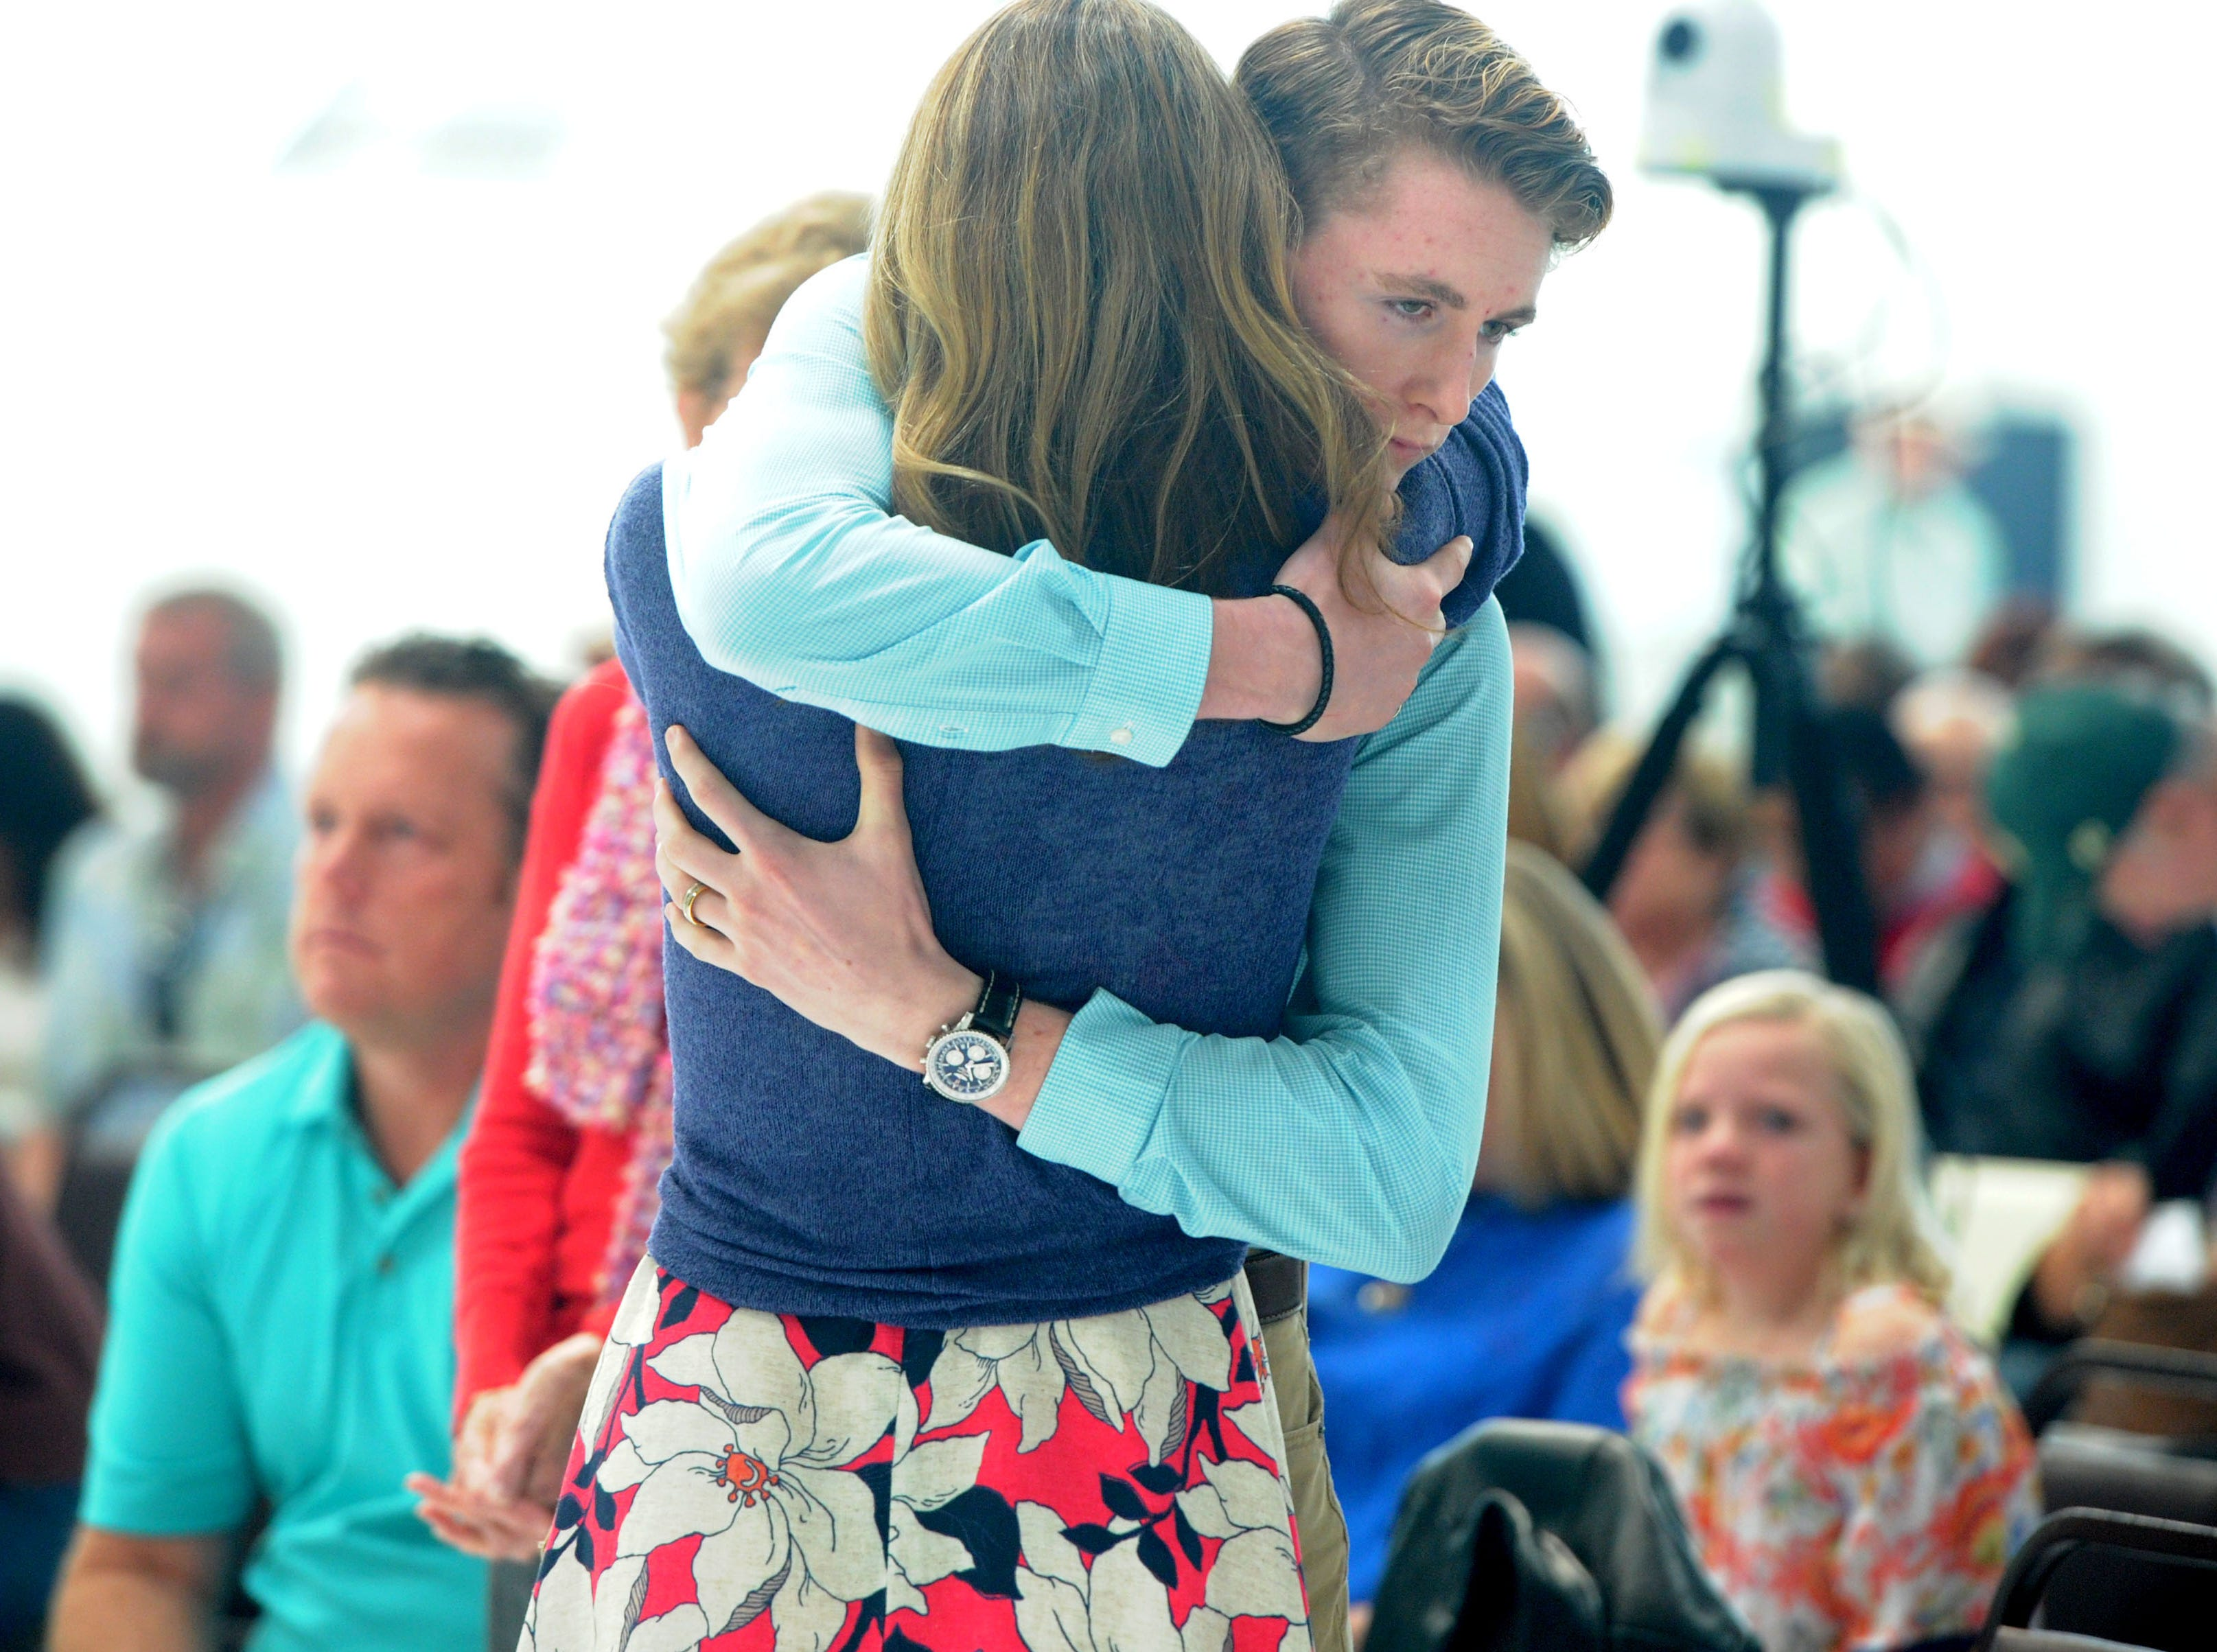 JT McNamee hugs his mother during a ceremony remembering his late father at the Camarillo Airport. Todd McNamee was the Ventura County airports director.